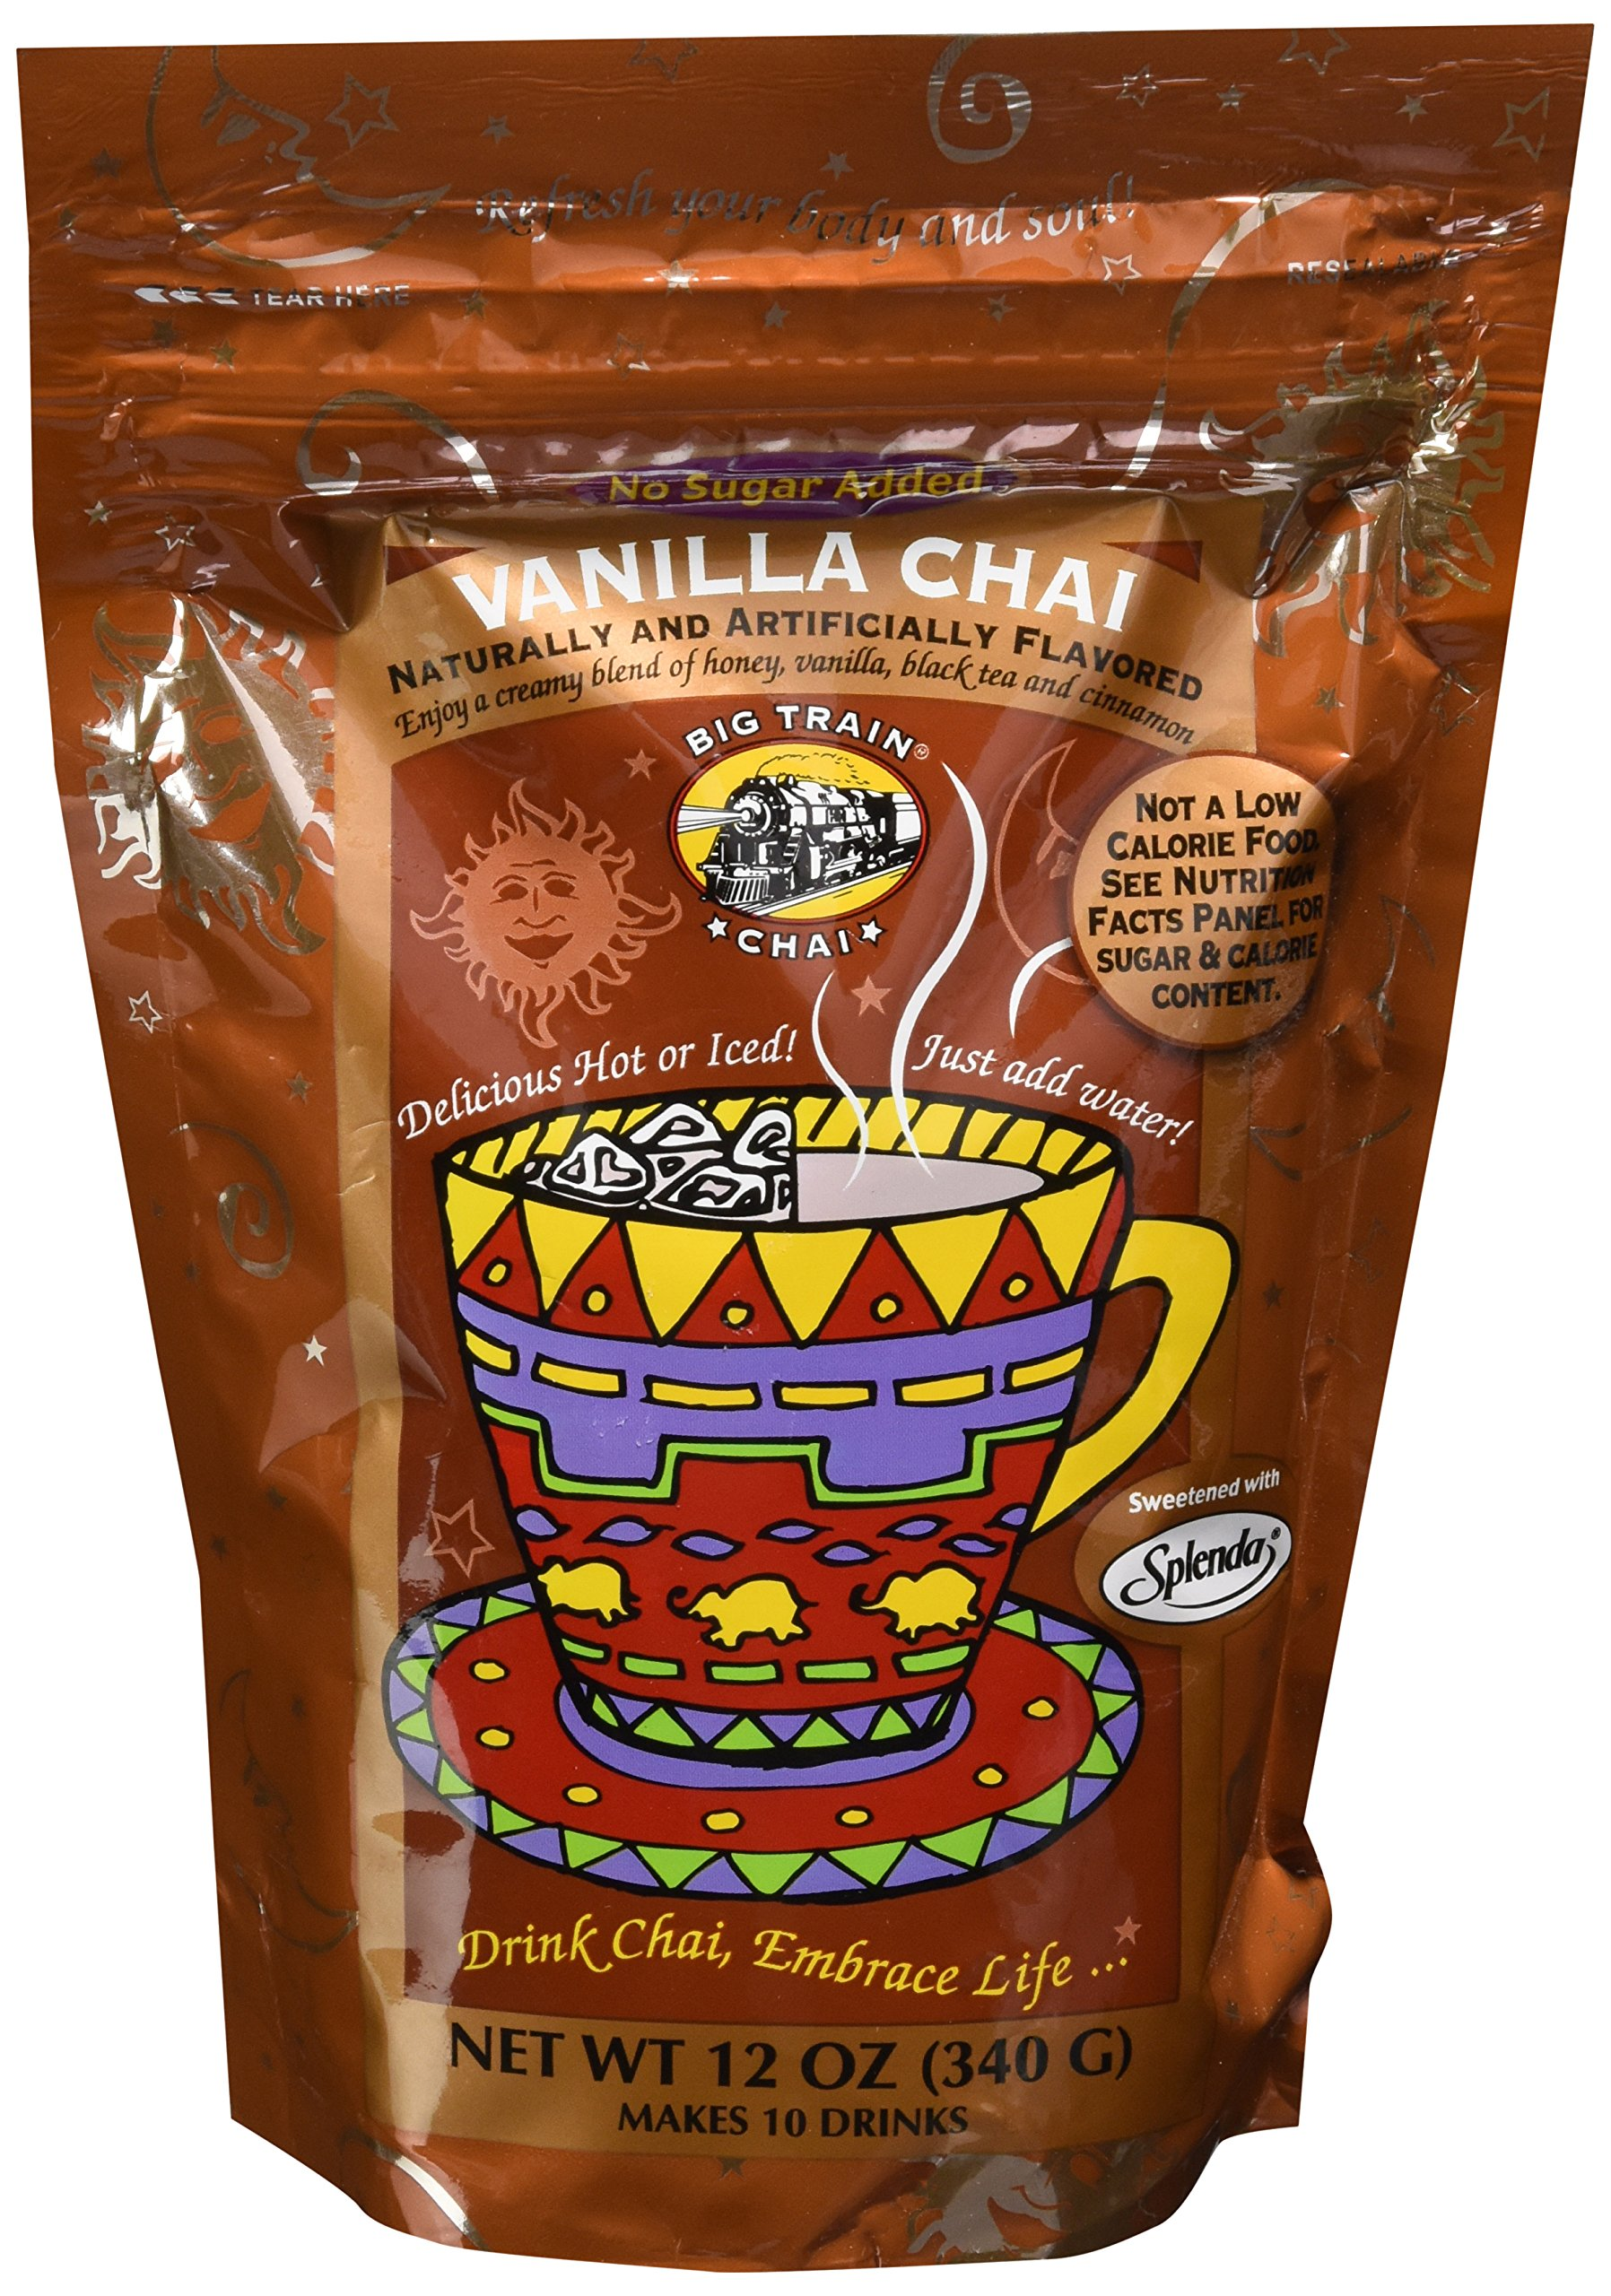 Big Train Chai - No Sugar Added Vanilla Chai (12oz. Resealable Bag) by Big Train